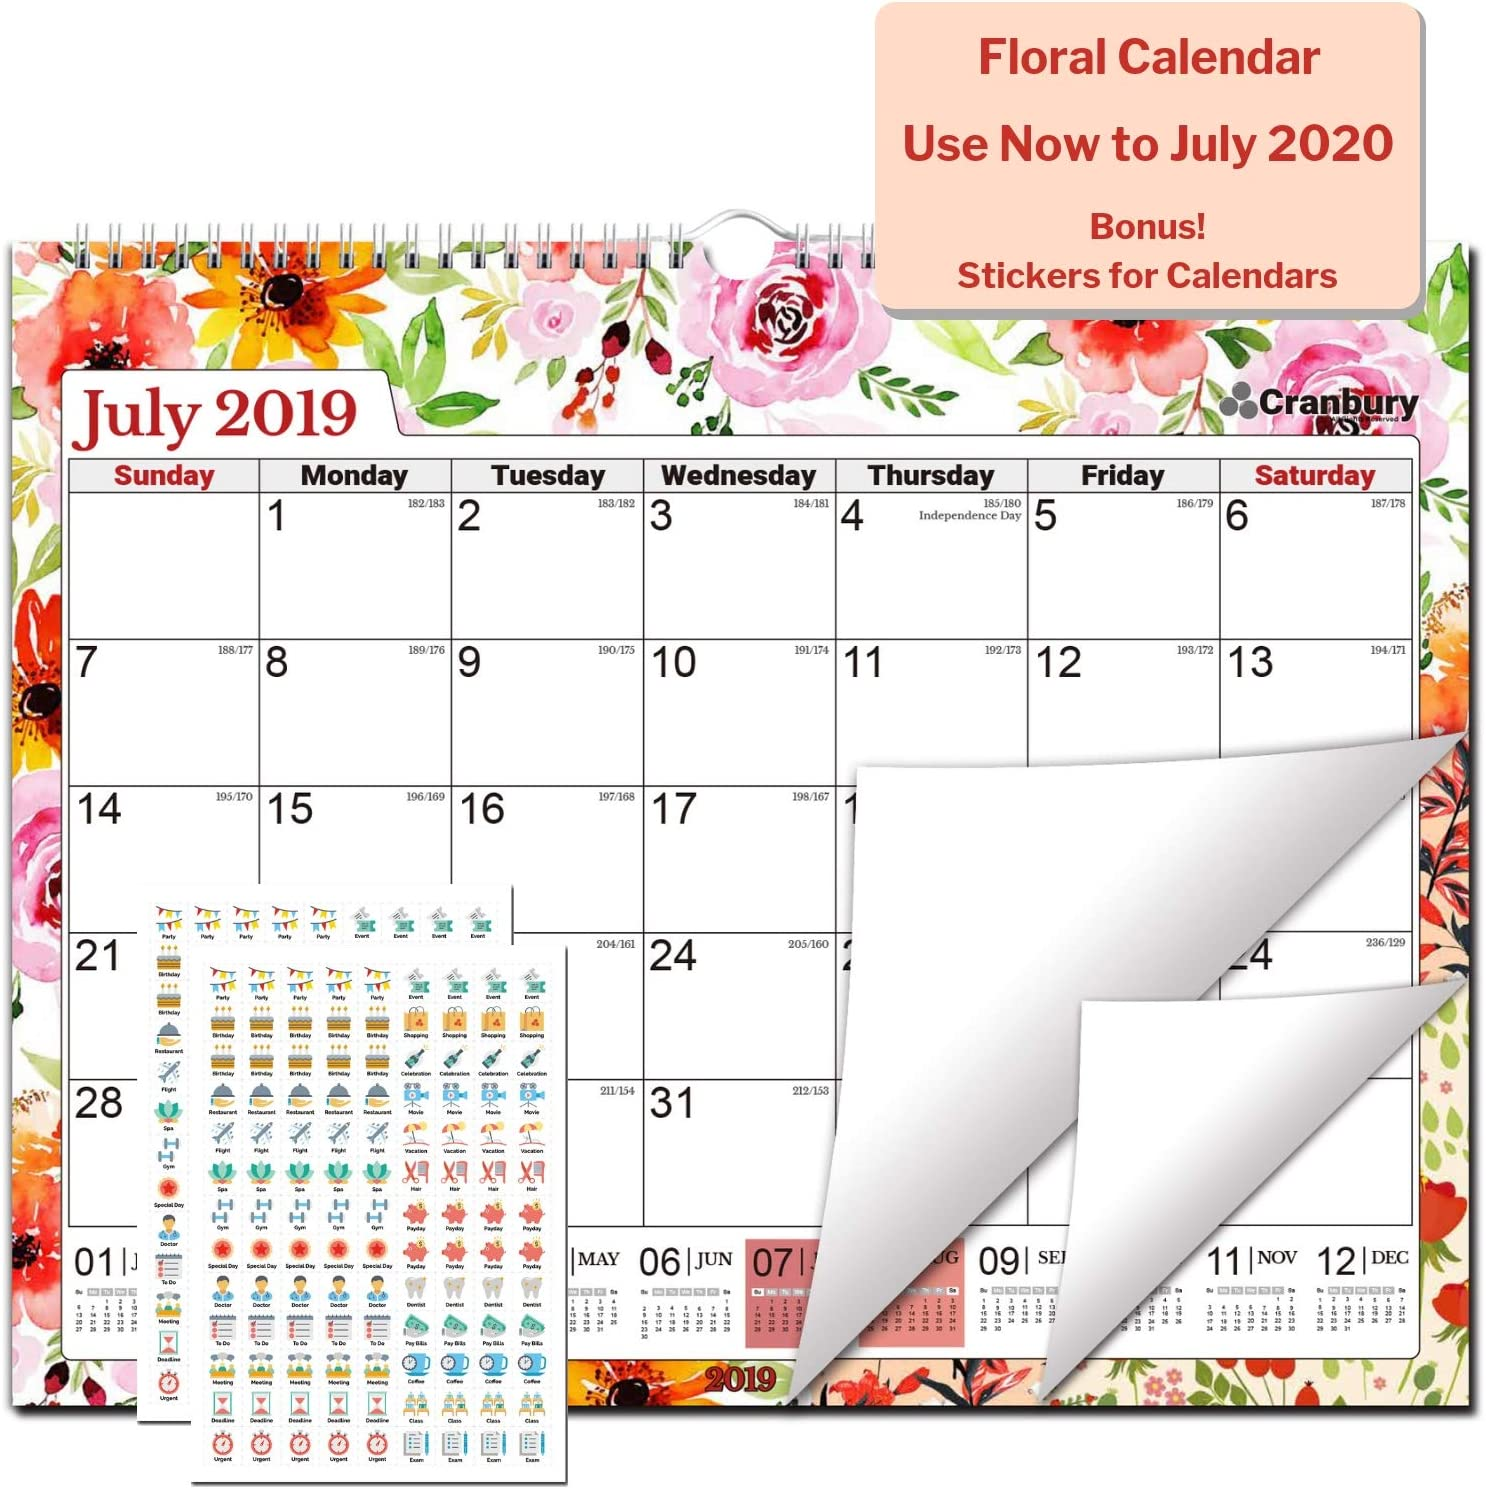 School Year Wall Calendar 2019-2020 (Floral) 15x12, Use Through July 2020, Monthly Large Wall Calendar, Big Hanging Academic Calendar, with Stickers for Monthly Wall Calendar 2019